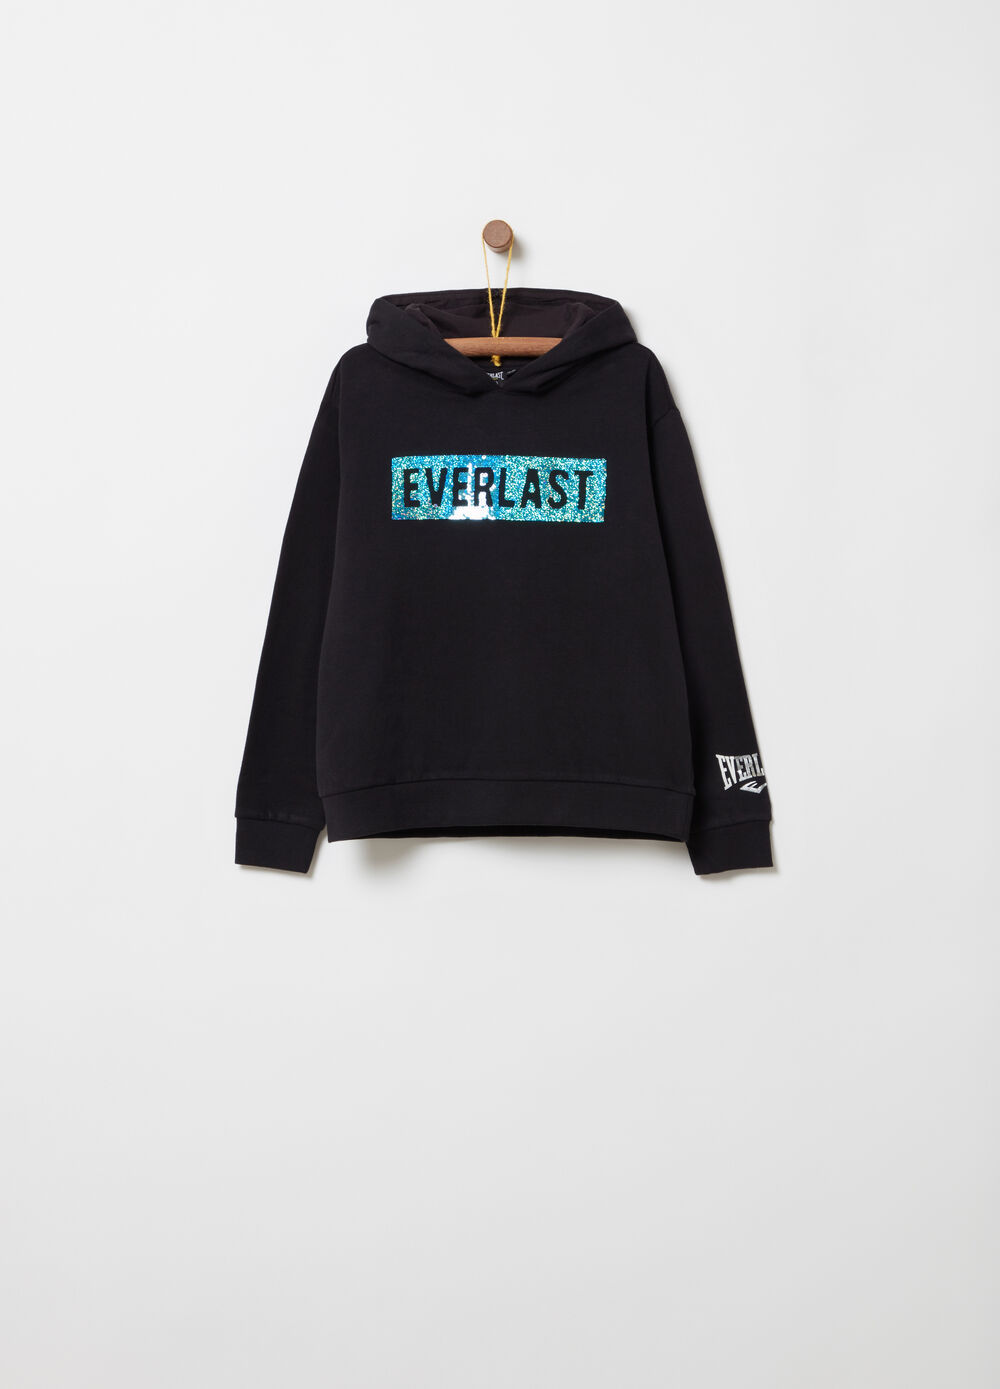 Everlast sequinned cotton sweatshirt